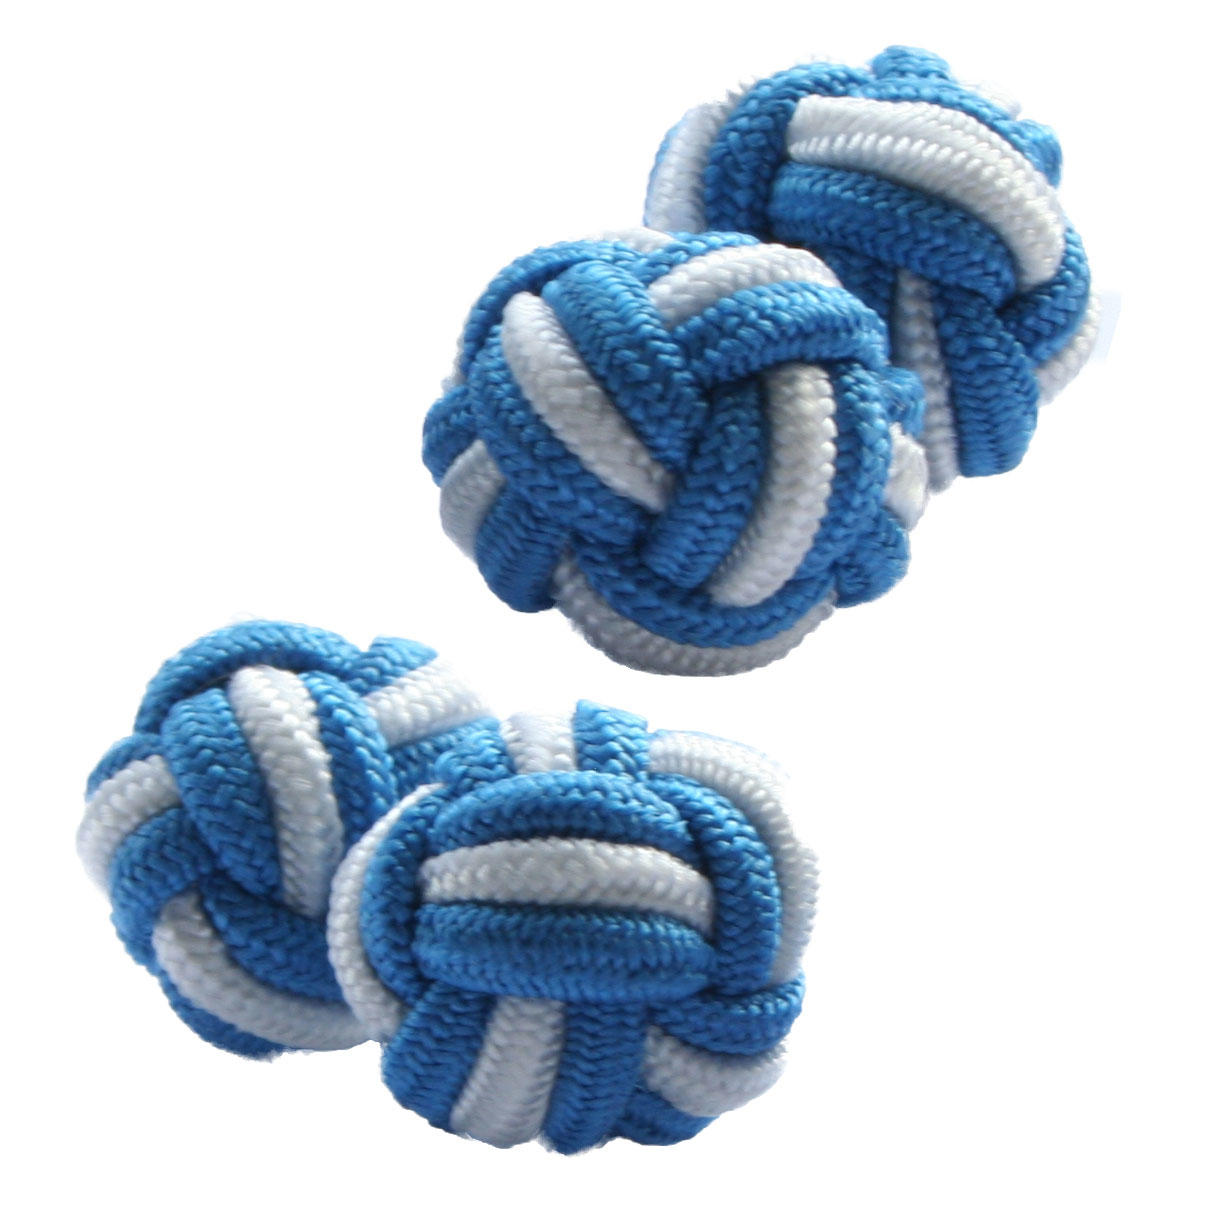 Pale Blue and White Silk Knot Cufflinks from Cuffs & Co